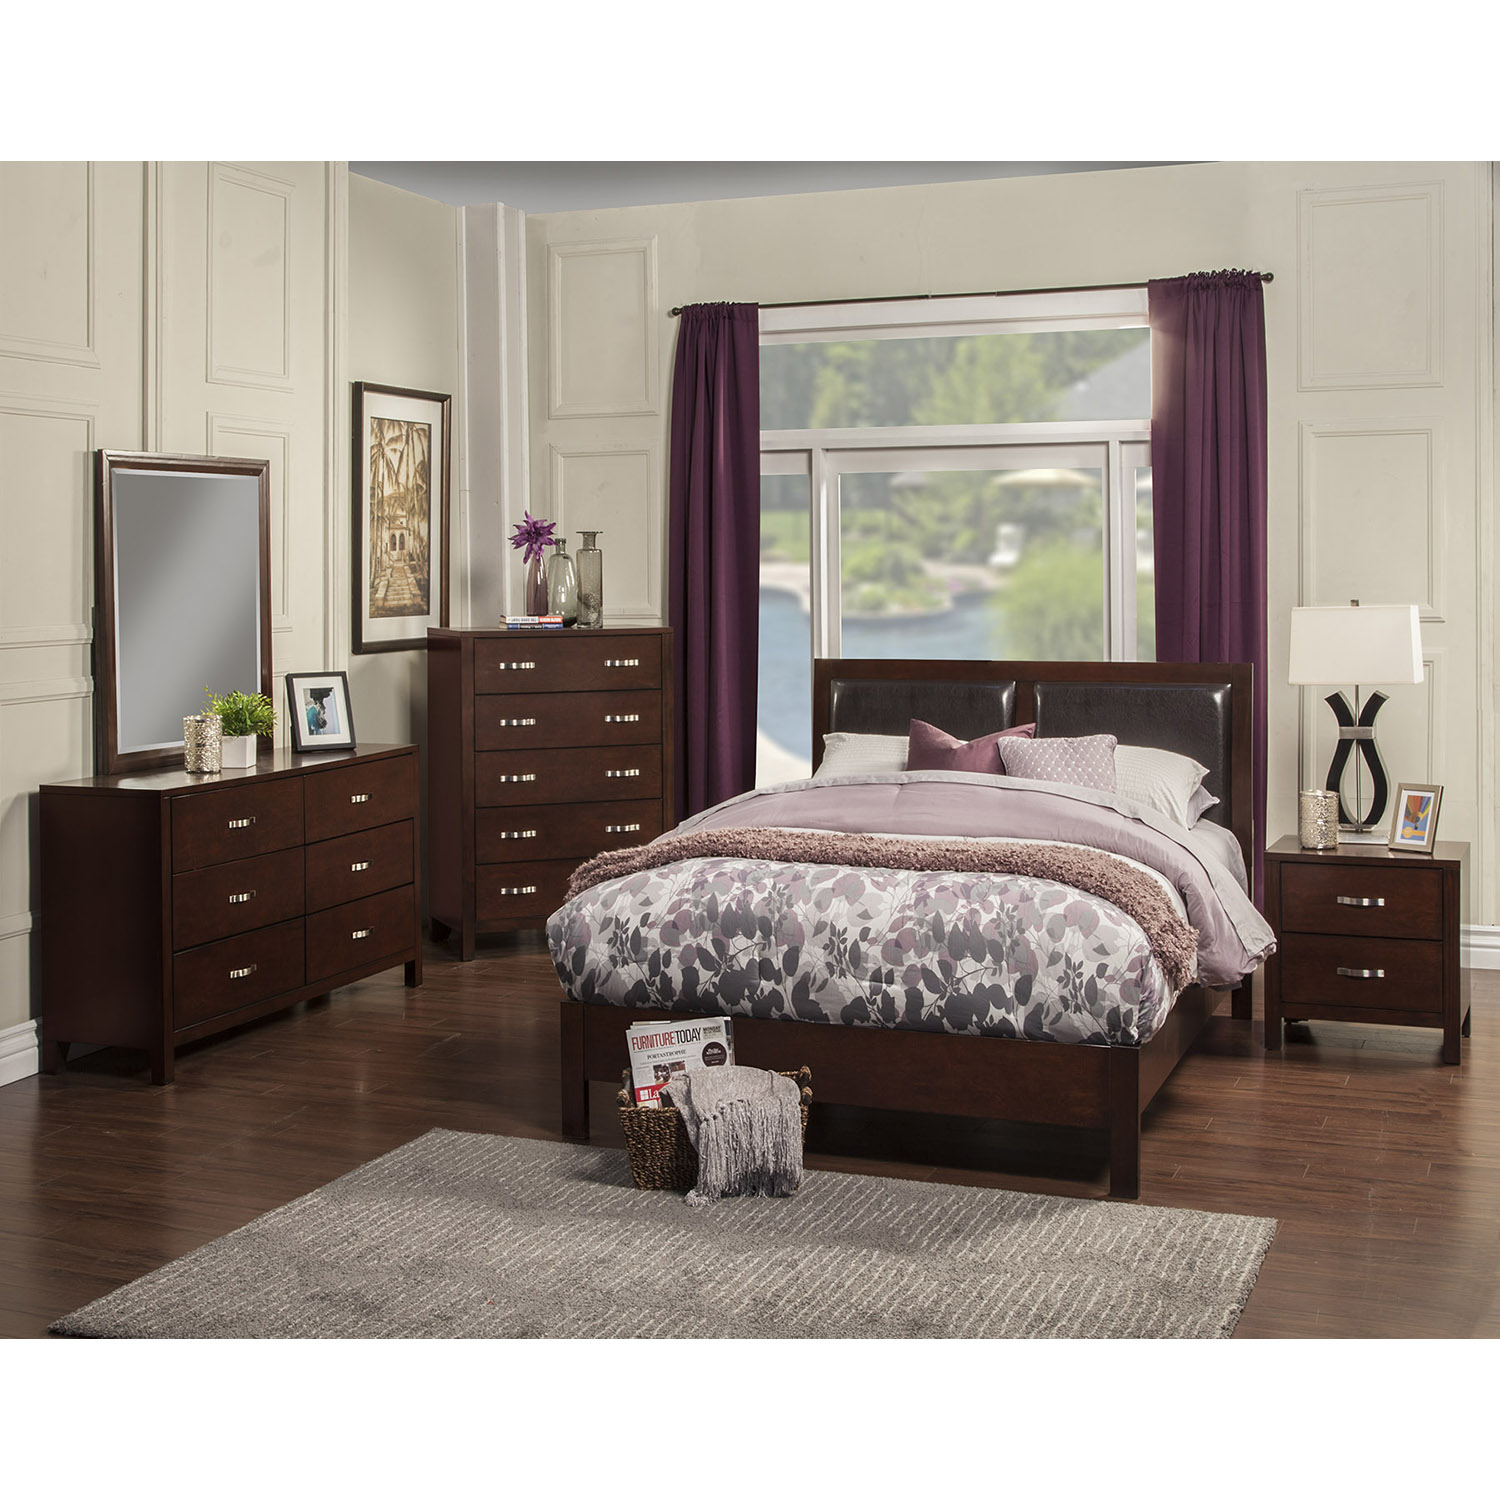 Costa Mesa 2-Drawer Nightstand - Medium Cherry - ALP-NCC-02